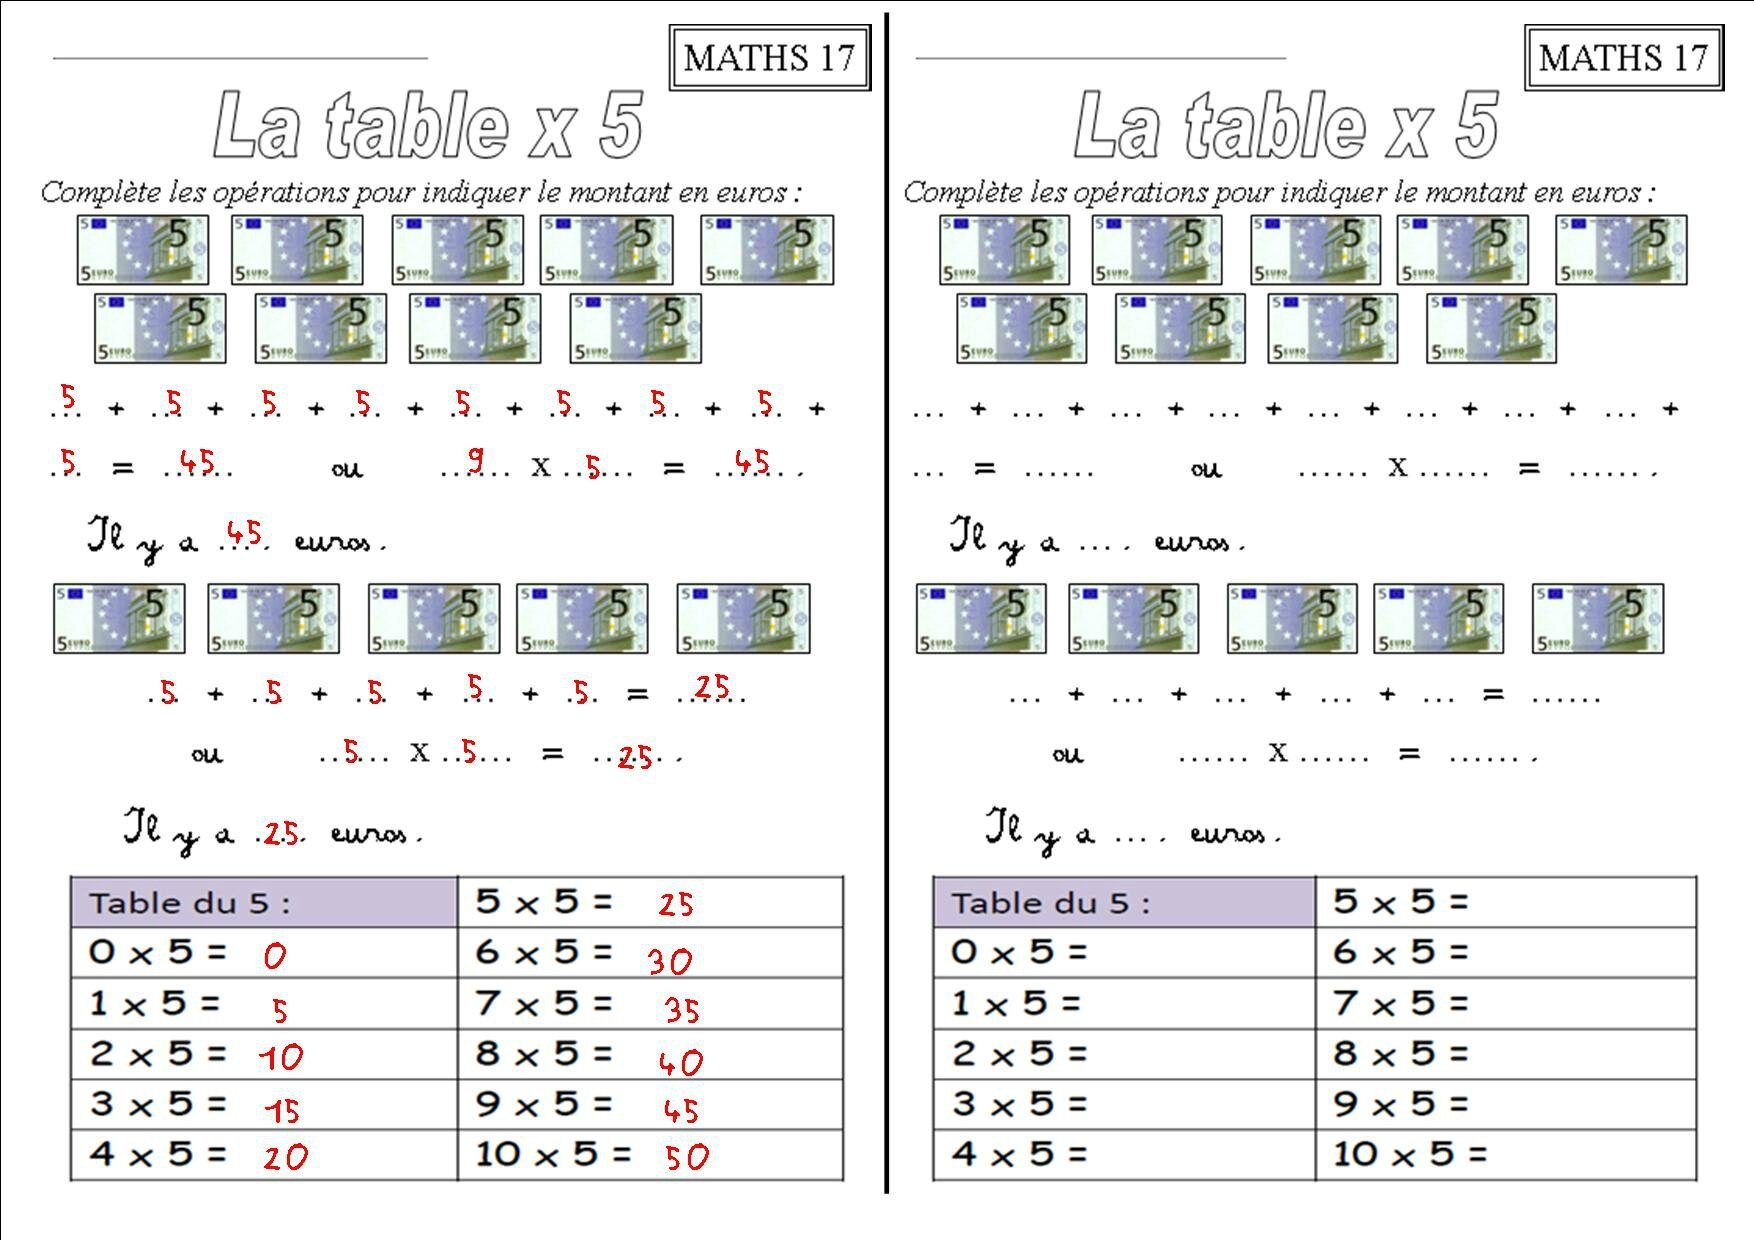 Les Tables De Multiplication Ce1 X 2 X 3 X 4 X 5 X